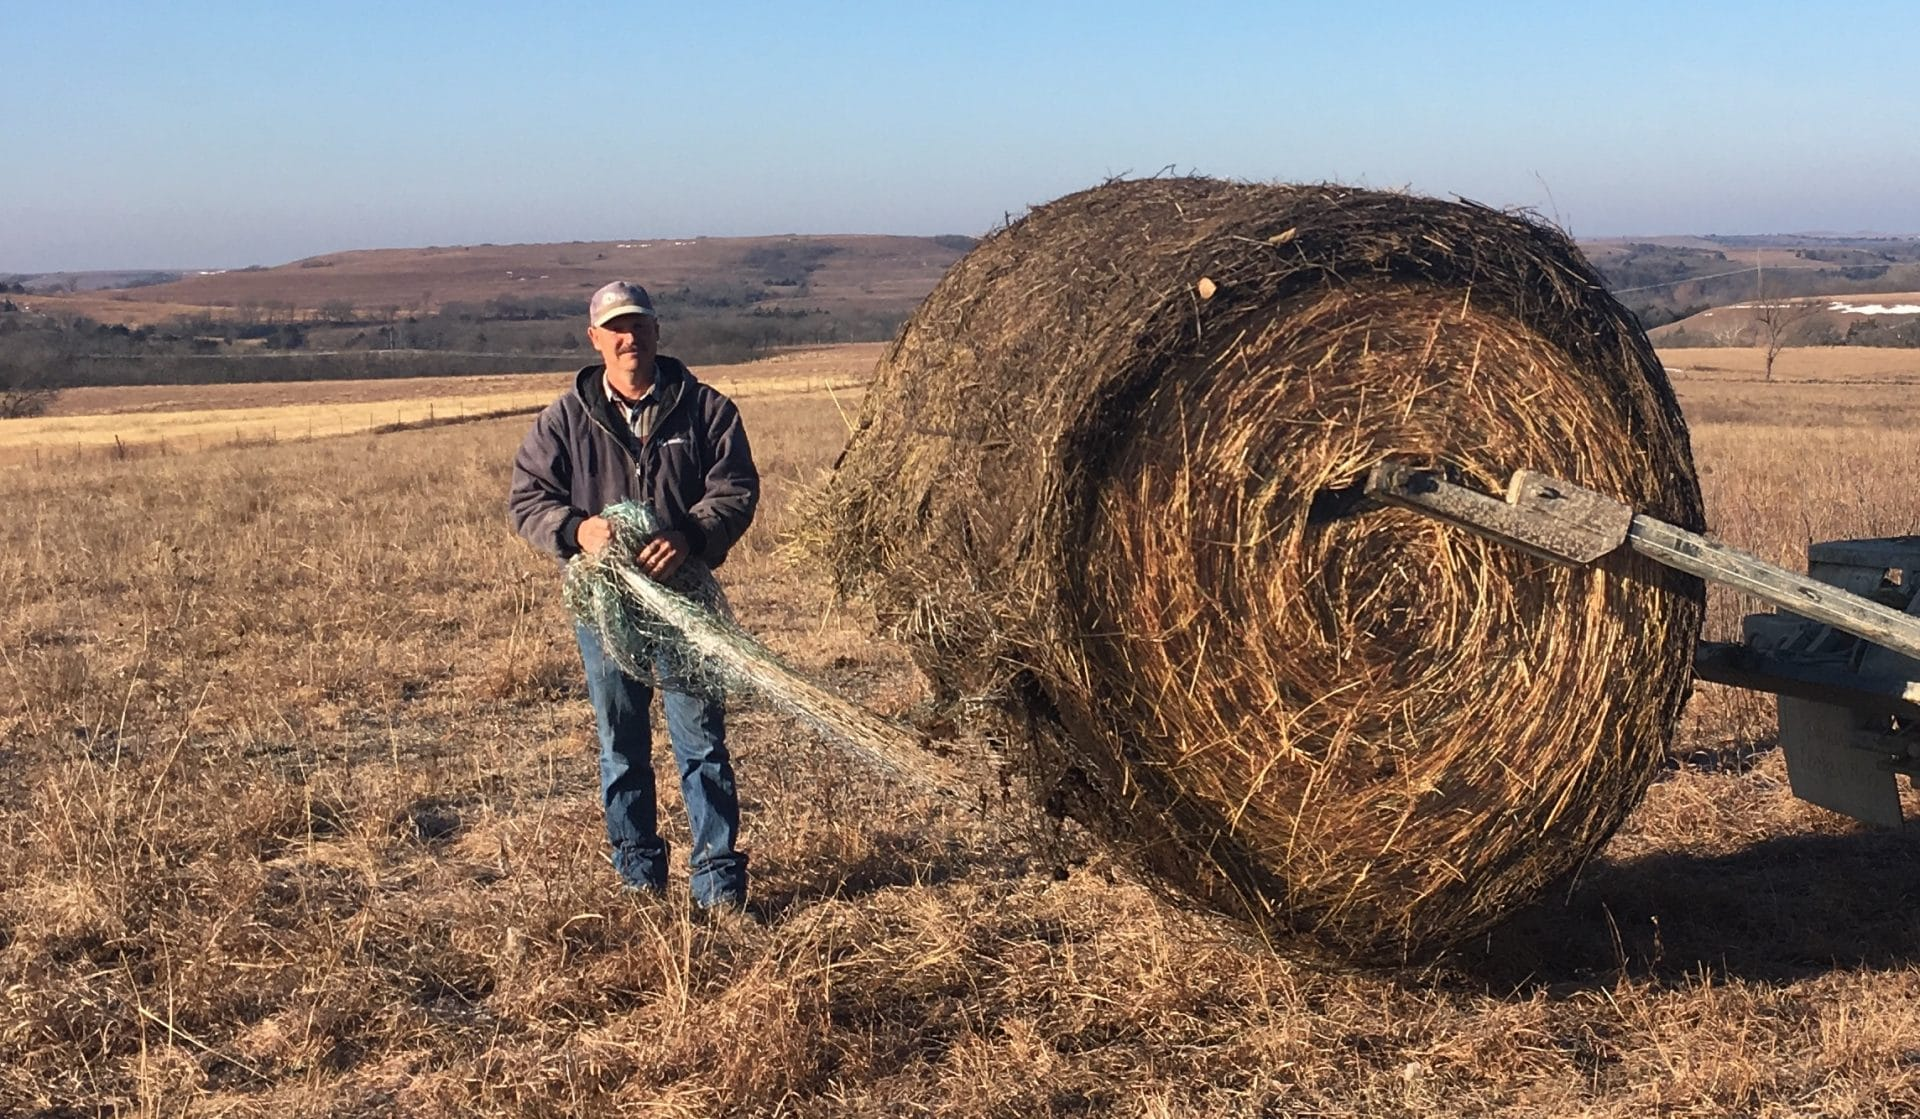 Matt Anderson prepares to feed cattle on his ranch in Alma, Kansas. Photo by Elisabeth Eaves